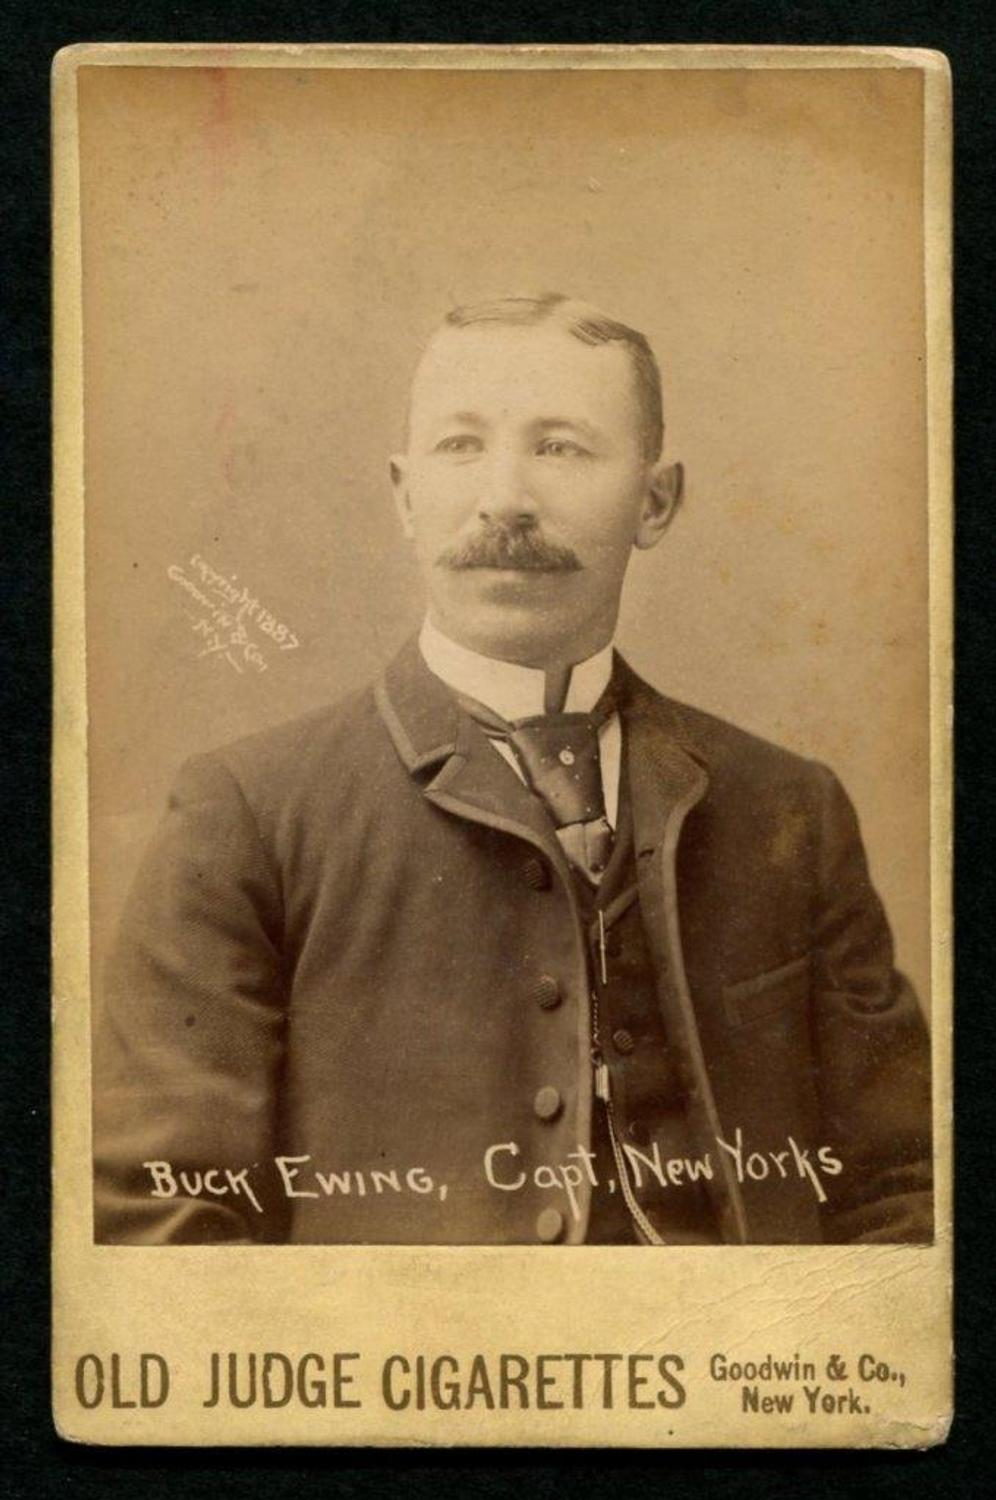 Group Of 37 Old Judge Cabinet Baseball Cards From 1888 Sell For A